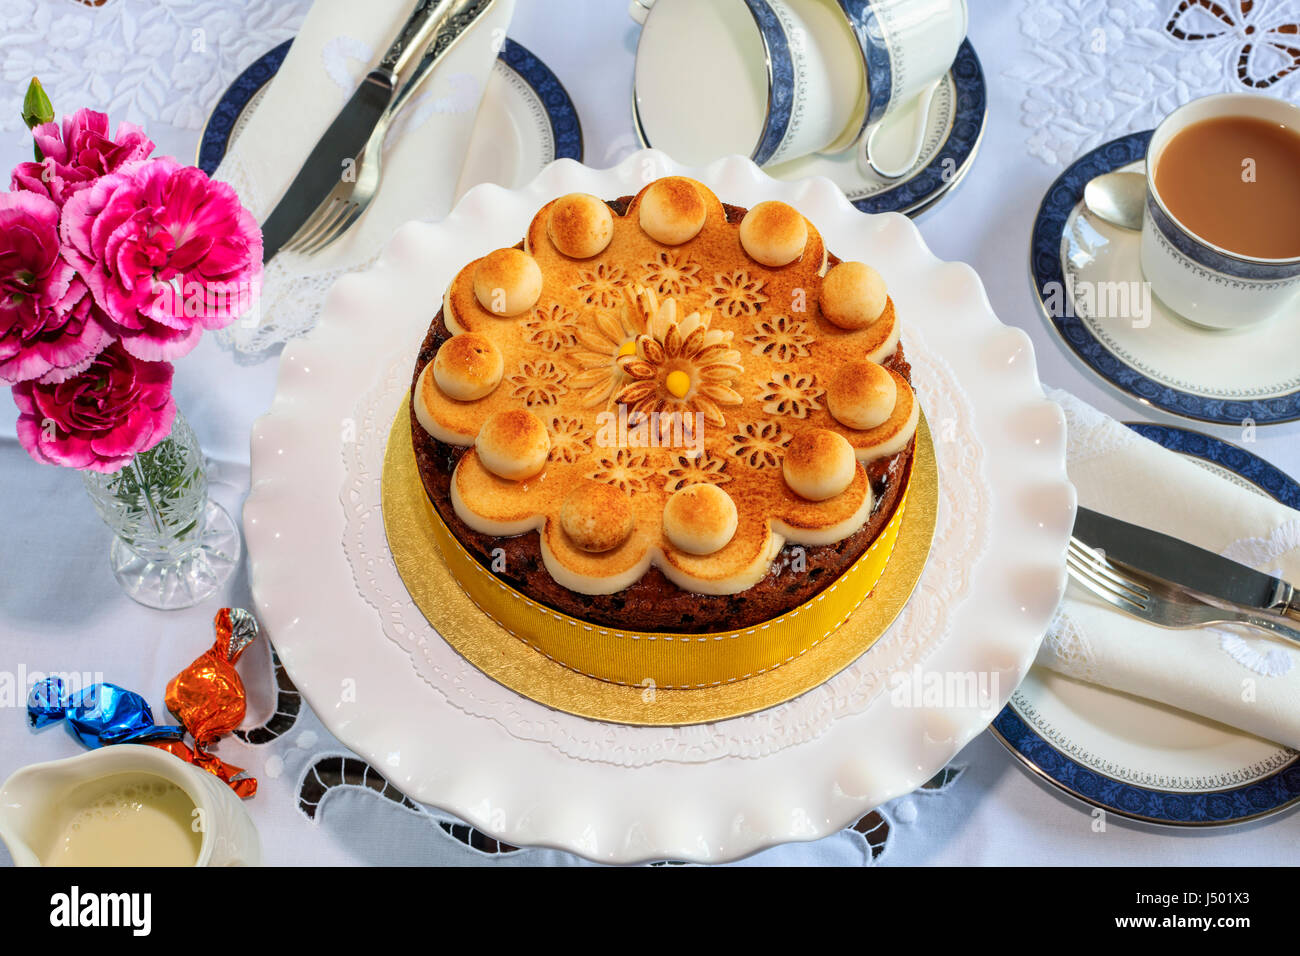 Simnel cake - gâteau aux fruits traditionnel de Pâques décorés de massepain sur un set de table Photo Stock